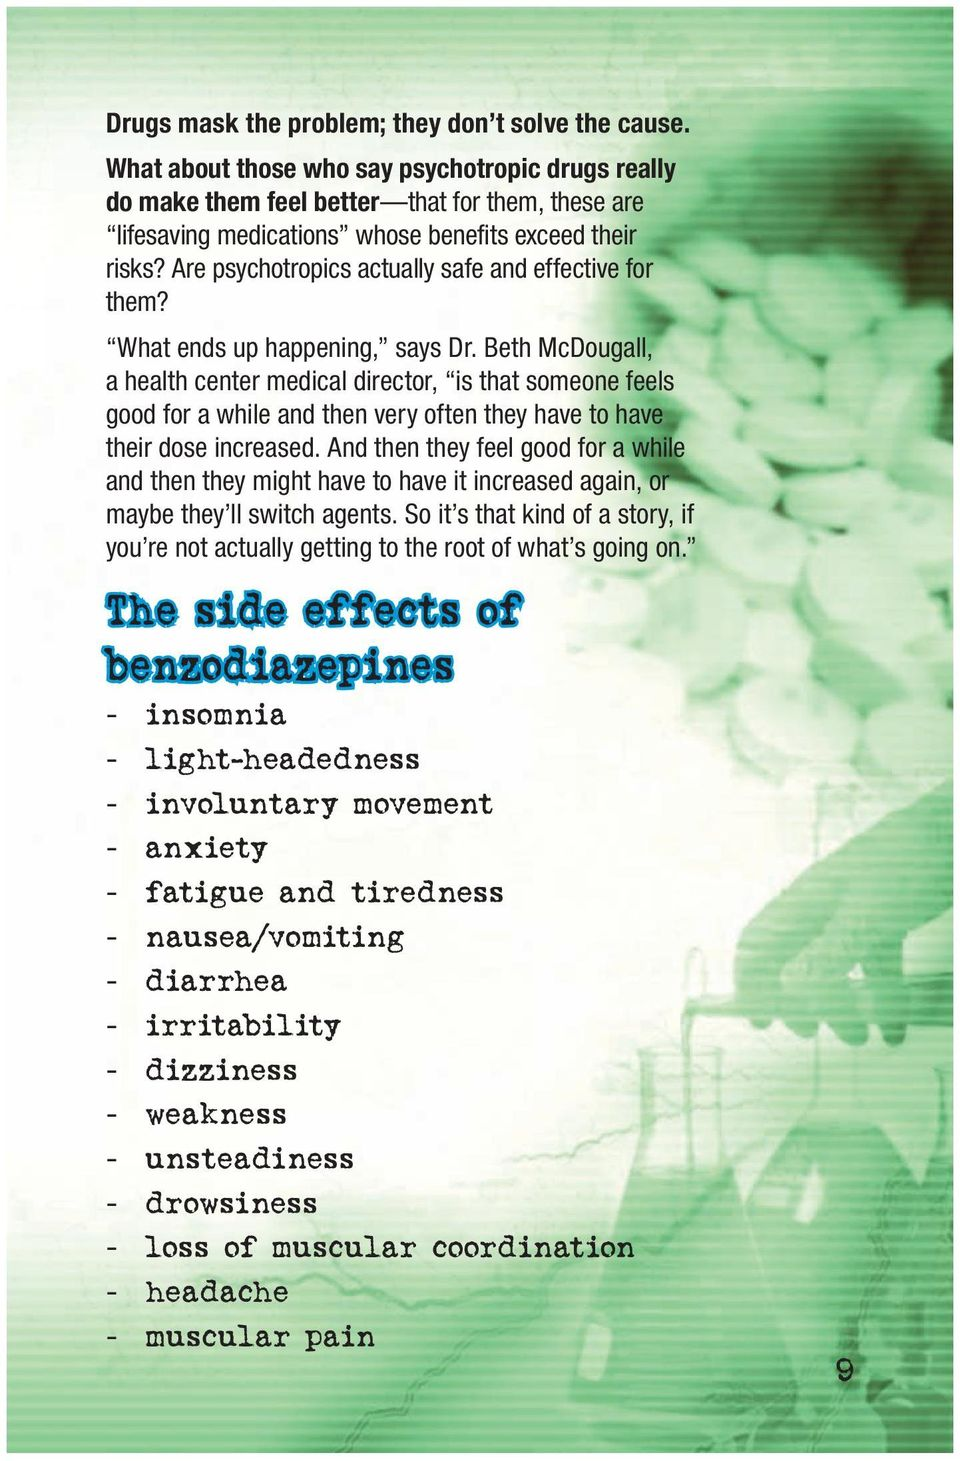 Are psychotropics actually safe and effective for them? What ends up happening, says Dr.